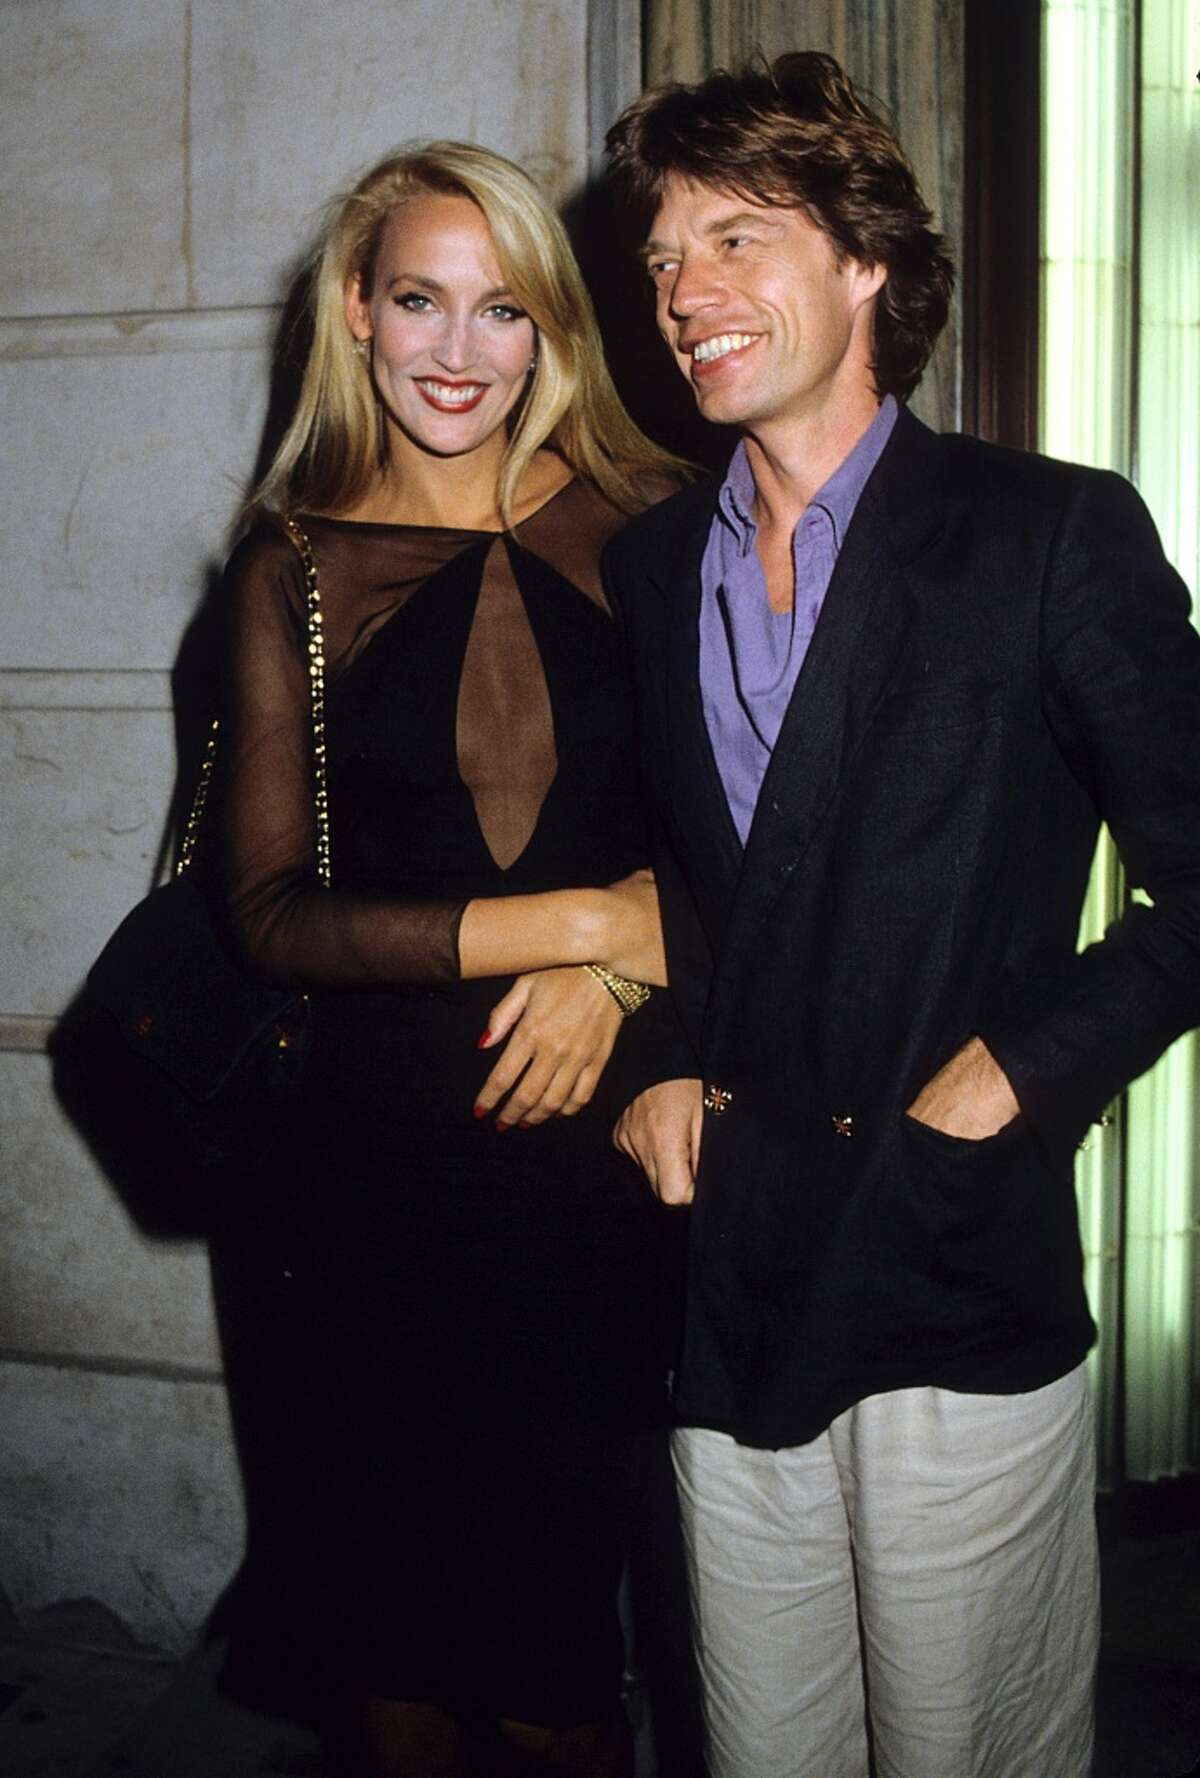 Jerry Hall and Mick Jagger's model/rock star marriage was a rocky one, with Hall coming close to splitting with the Rolling Stones' frontman on numerous occasions, amid his rumored infidelities. Hall finally called it quits in 1999 when it was revealed that Brazilian model Luciana Morad was pregnant with Jagger's baby. Their marriage (which was a Hindu ceremony in Bali) was technically annulled, but Hall is believed to have received between $15 and $20 million.